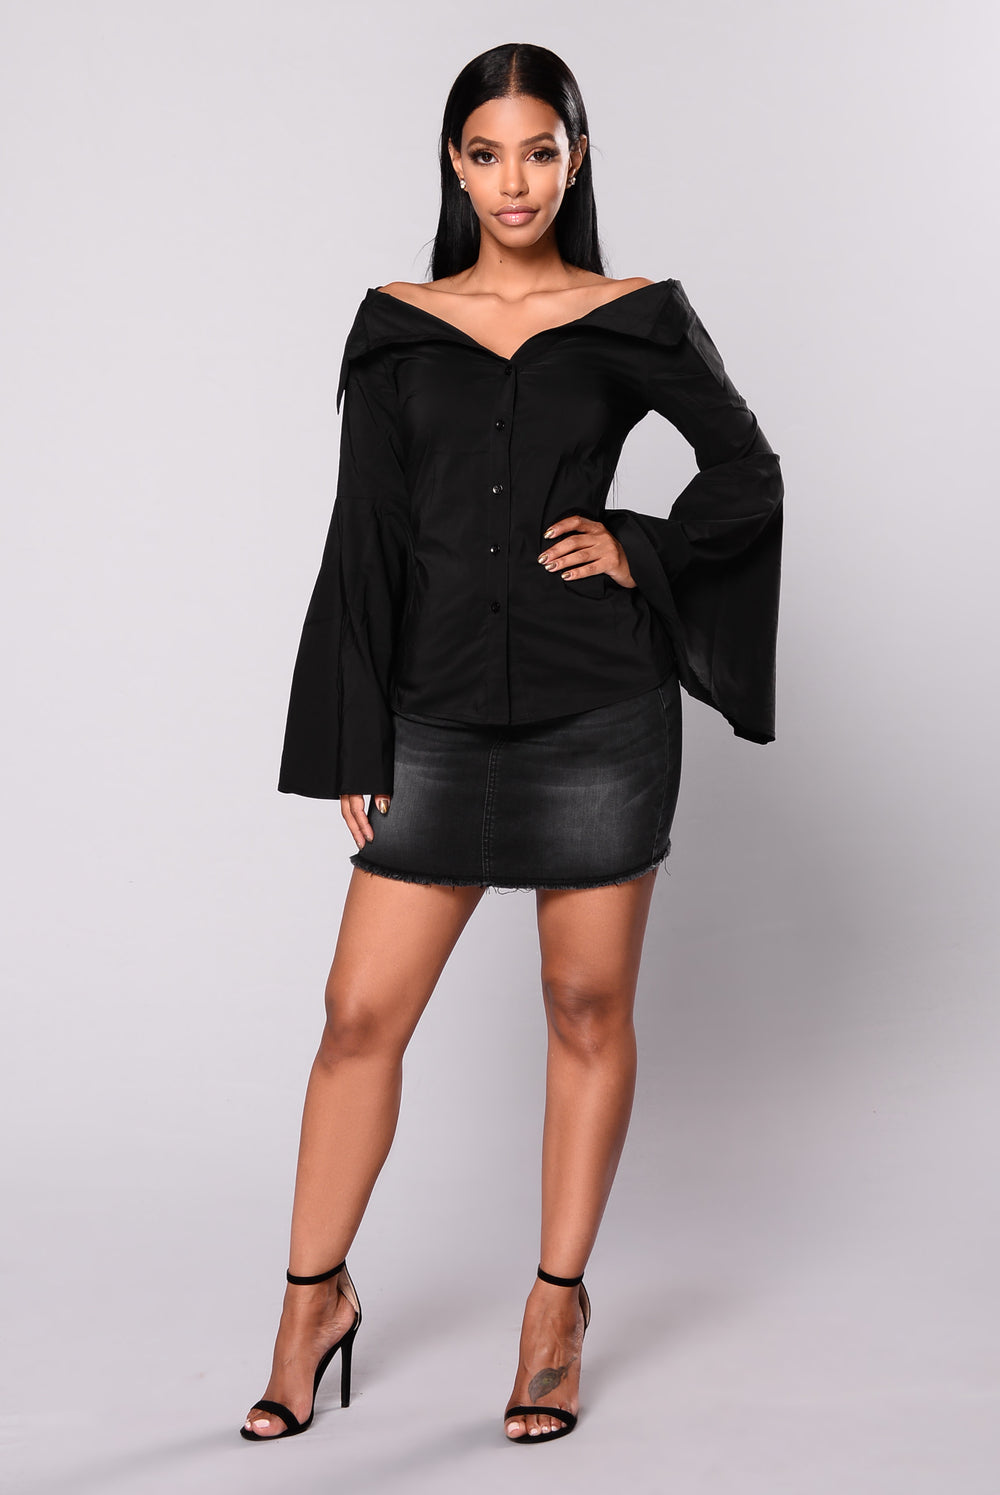 Modern Fling Bell Sleeve Top - Black